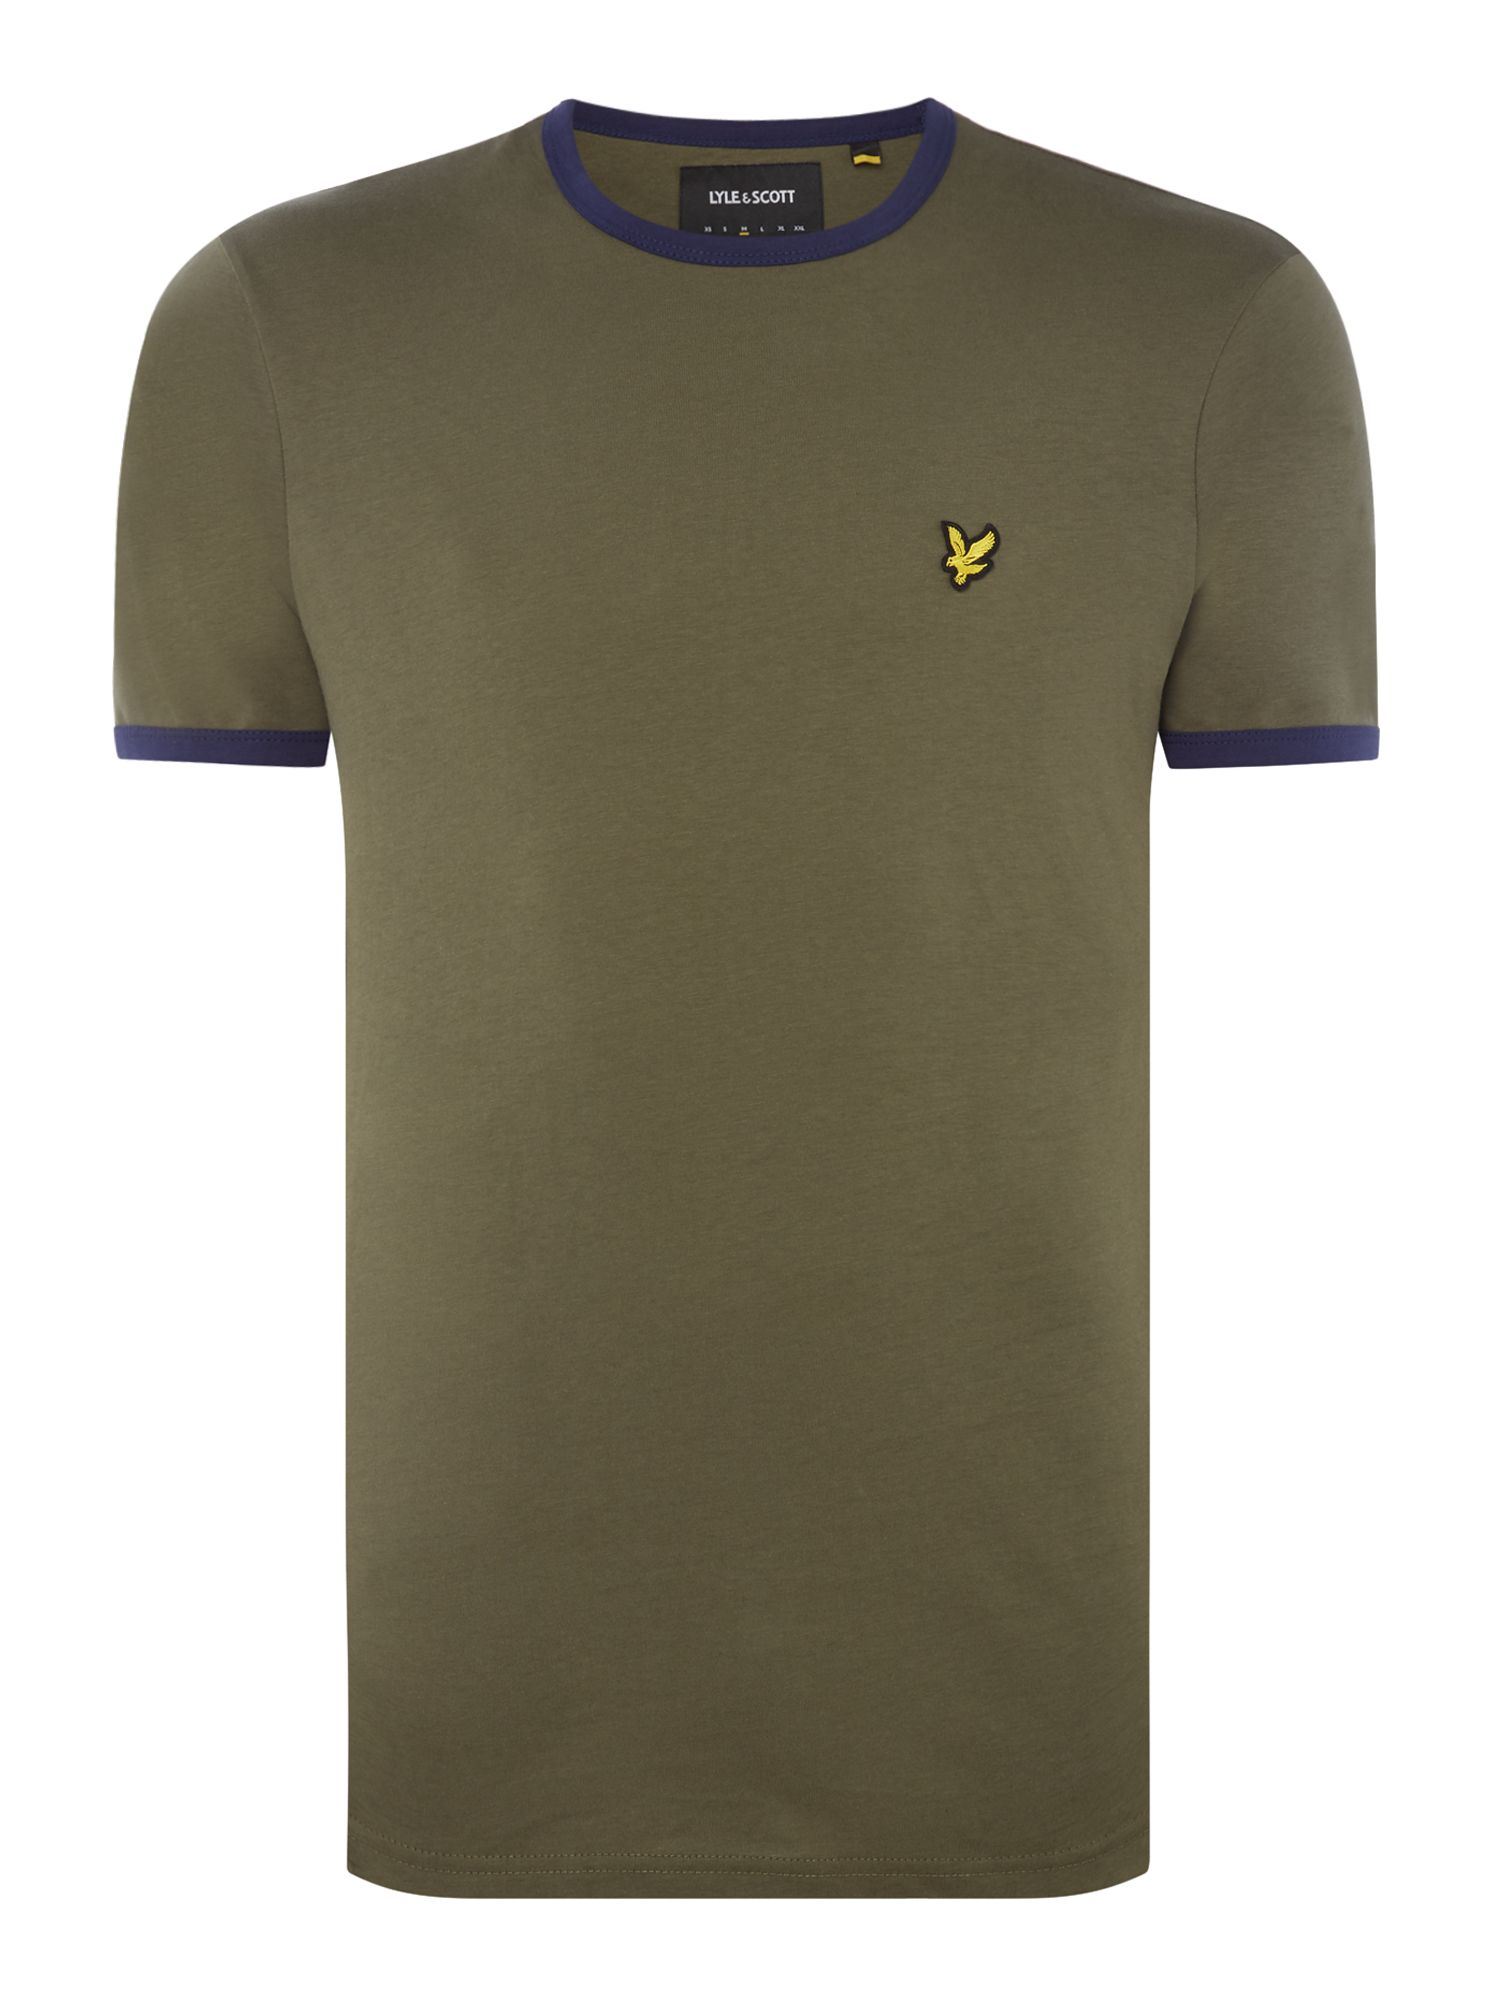 Men's Lyle and Scott Ringer crew neck short sleeve t-shirt, Olive